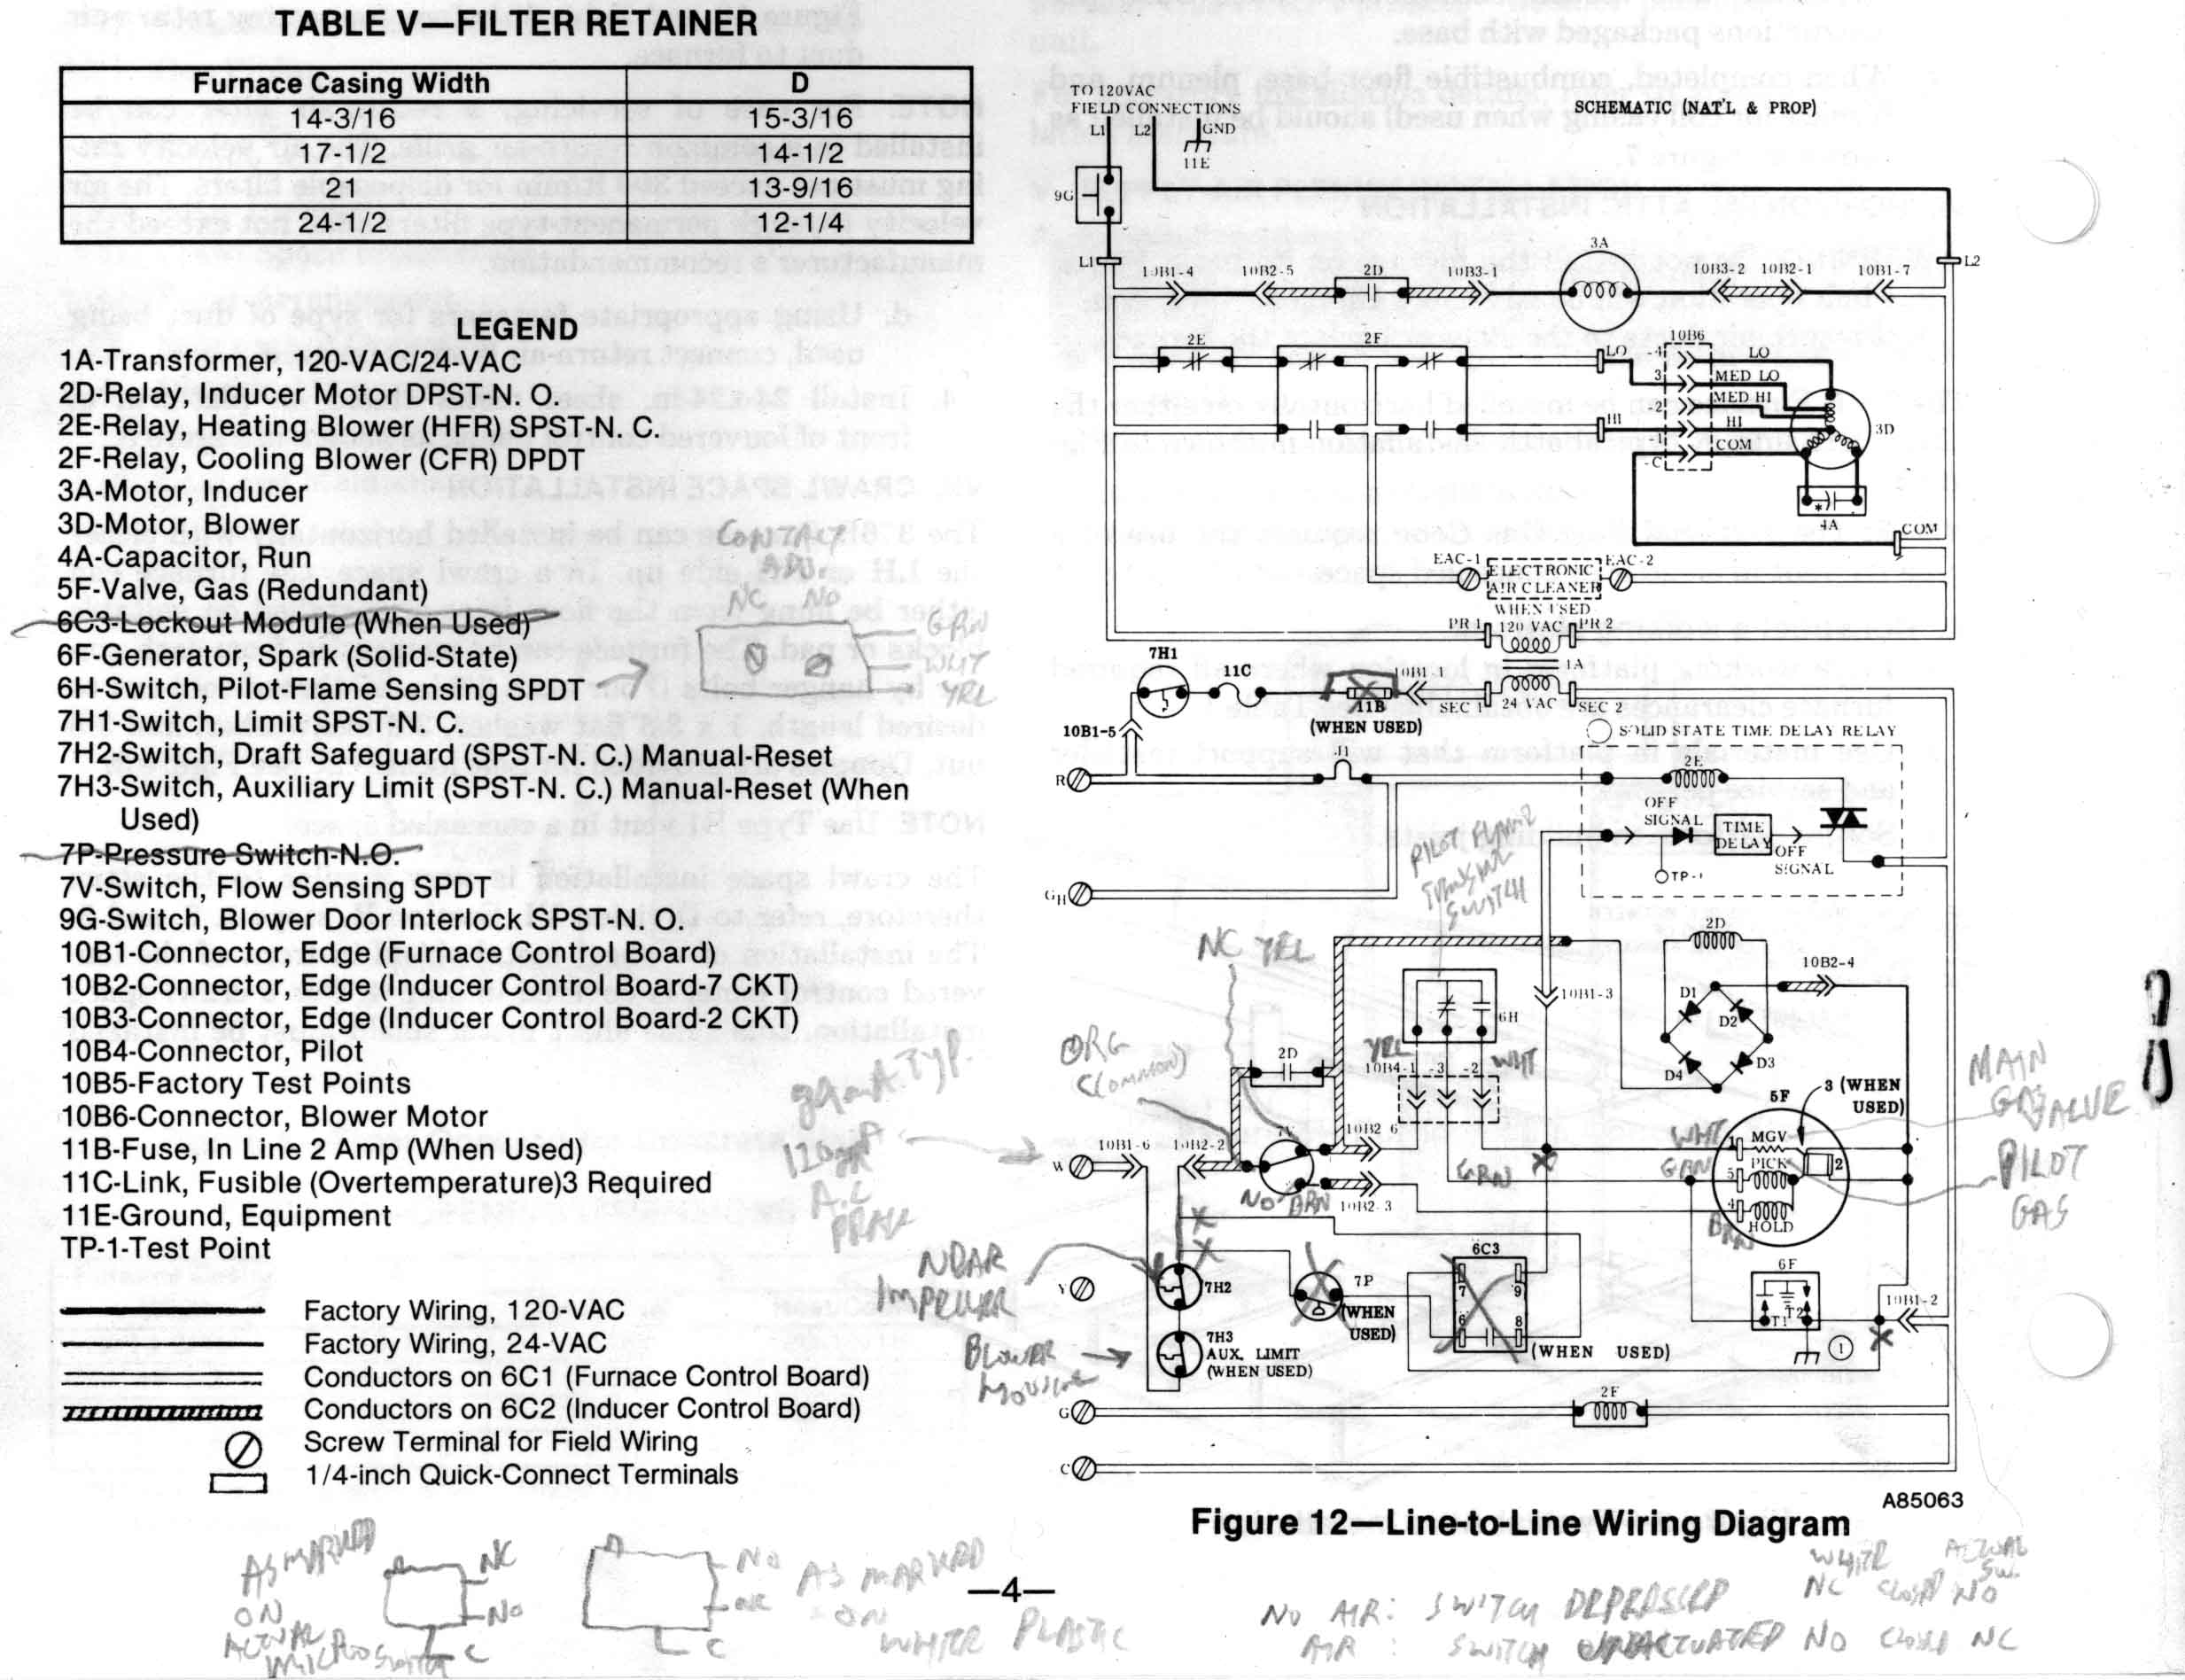 Clicking And Blipping 376b Furnace Fun Gas Wiring Diagram Force Click Image Or This Text For Full Sized Version In A Separate Window Tab